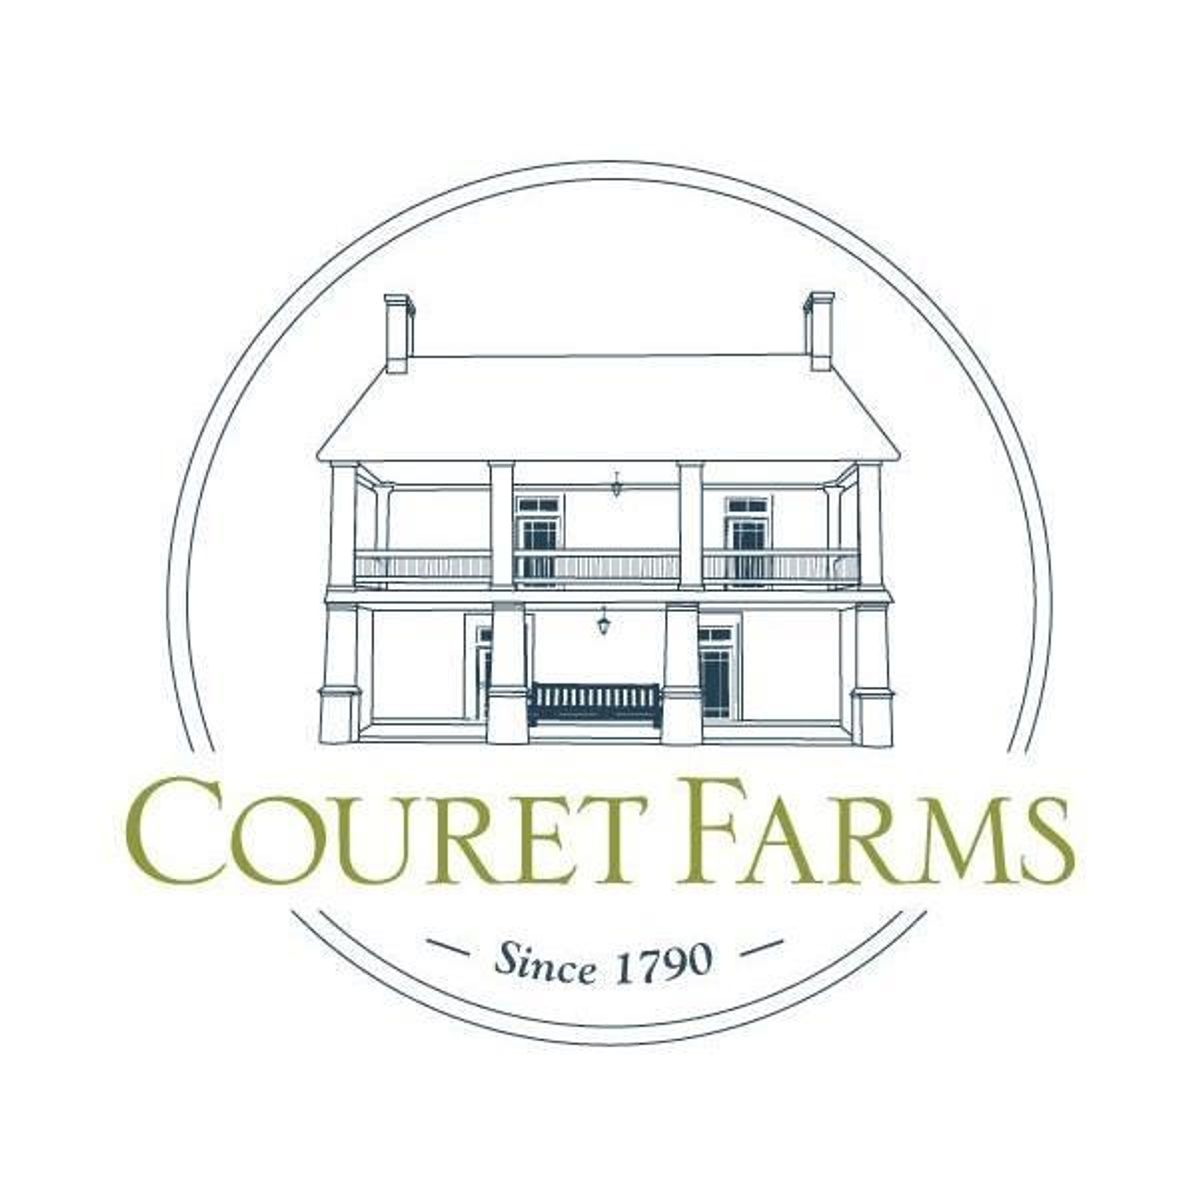 Couret Farms